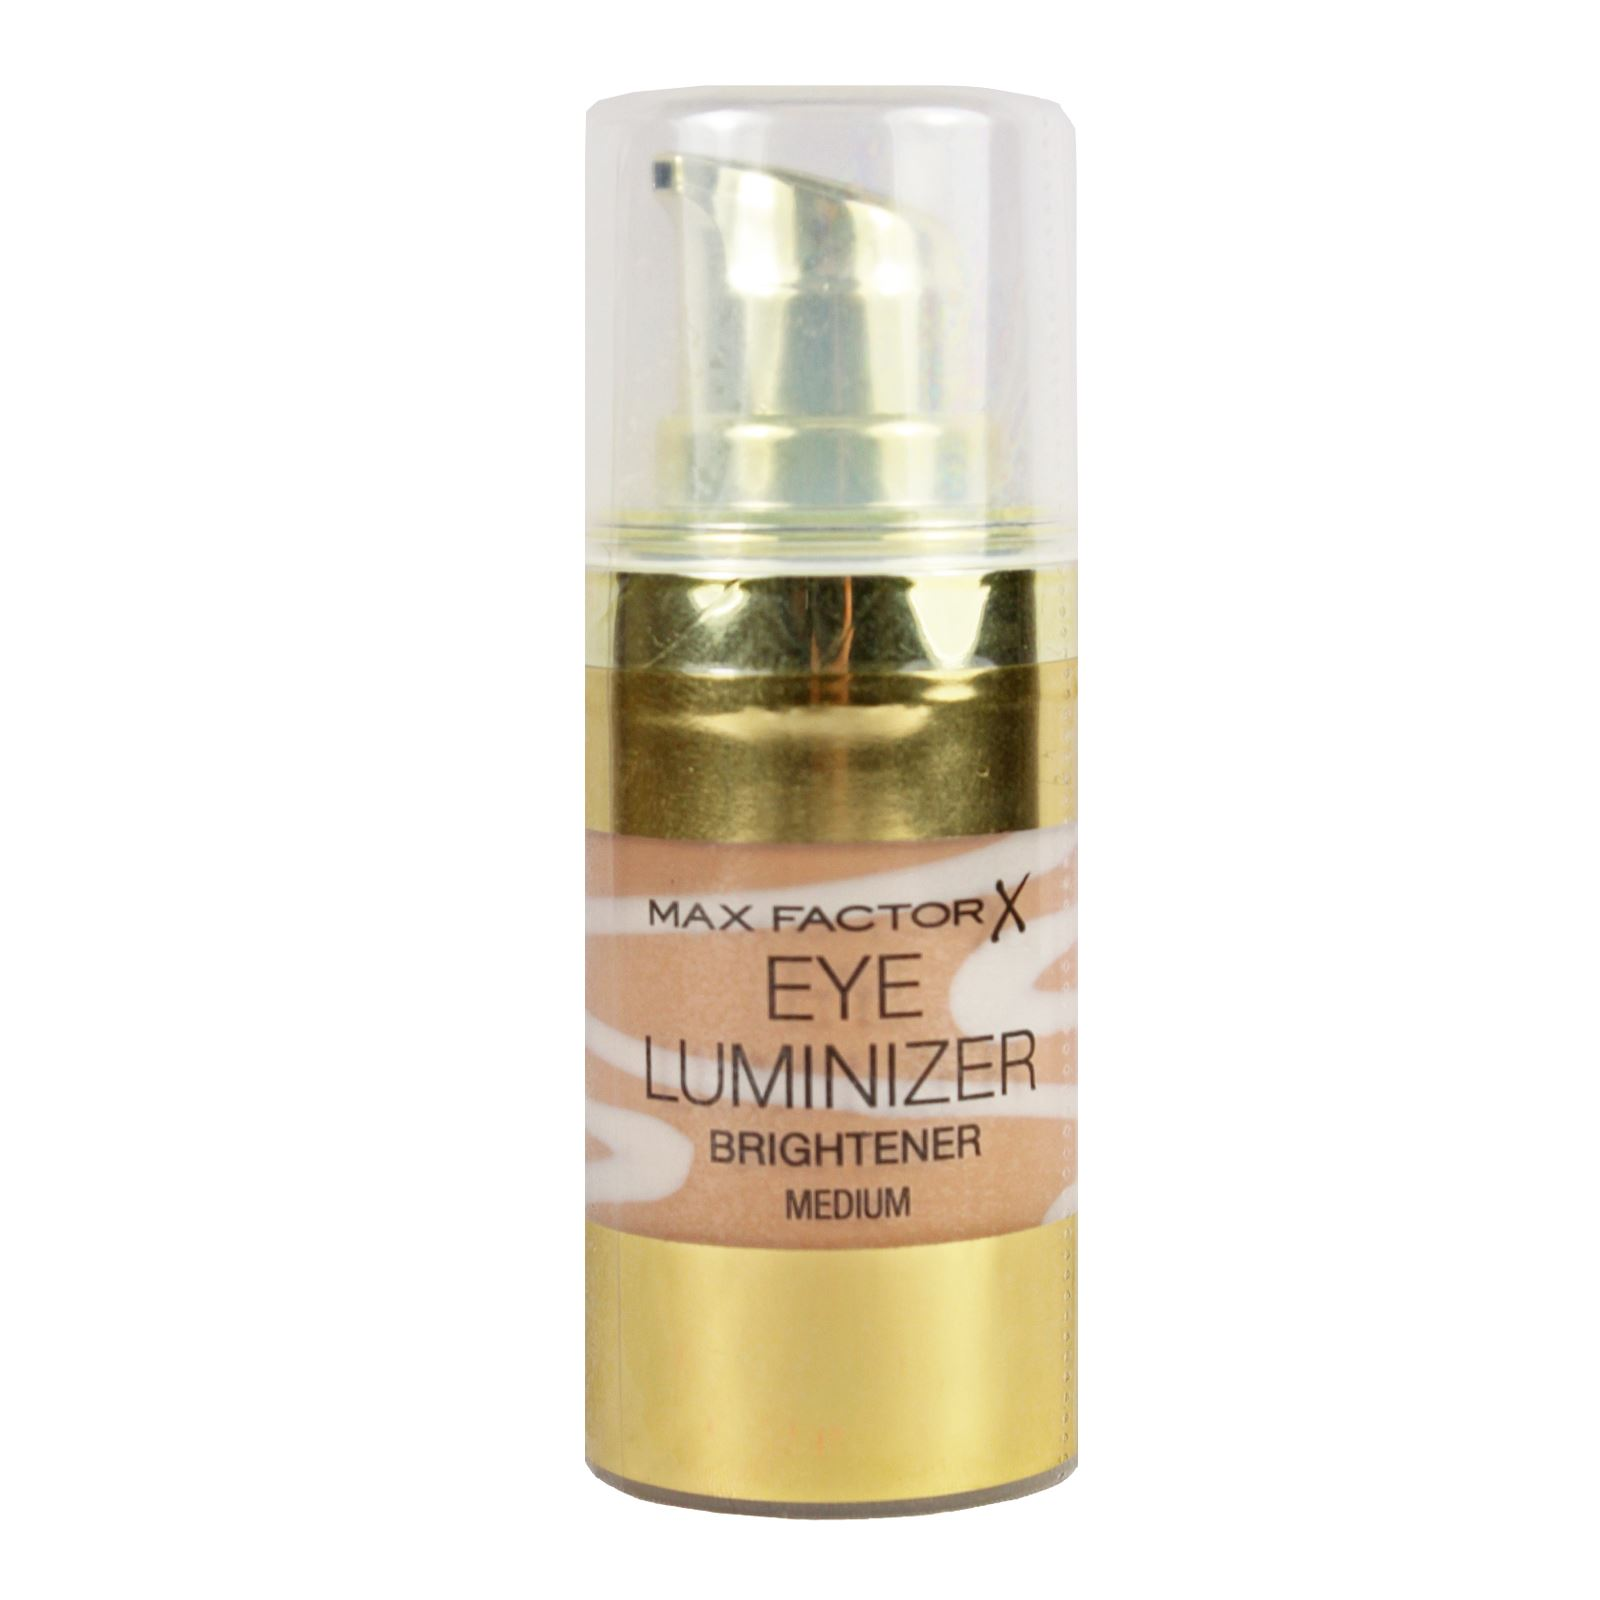 Max-Factor-Eye-Luminizer-Brightener-Light-Medium-Under-Eye-Concealer